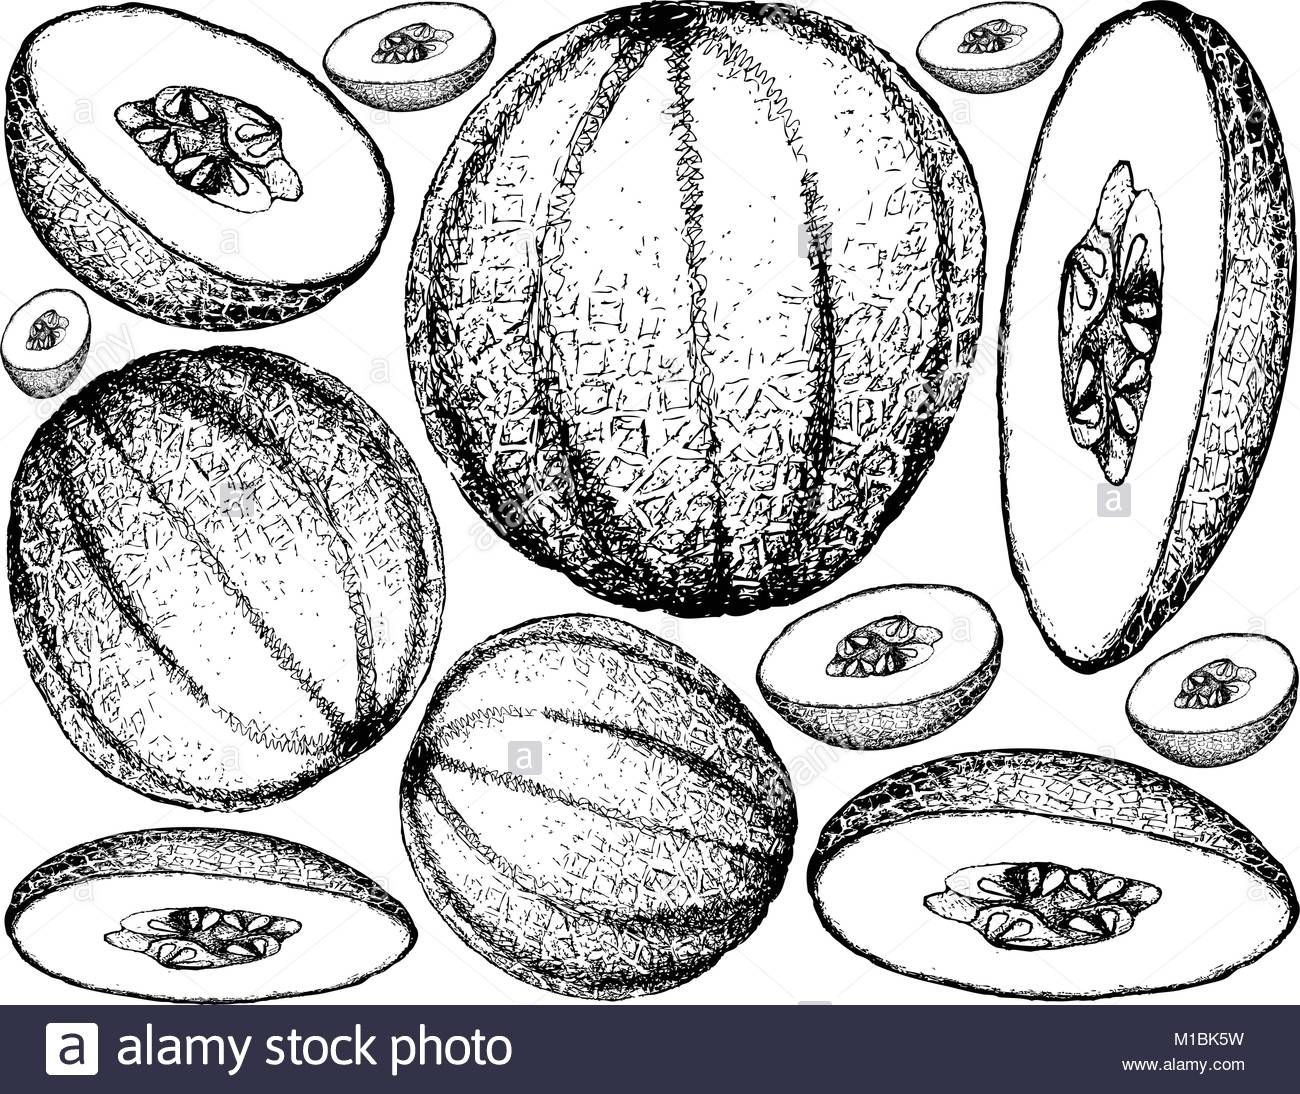 Pin On رسم Cantaloupes are packed with vitamins a and c, and since they have high water content, they are one cup of cantaloupe contains only about 55 calories (due to its high water content) but offers over. pin on رسم